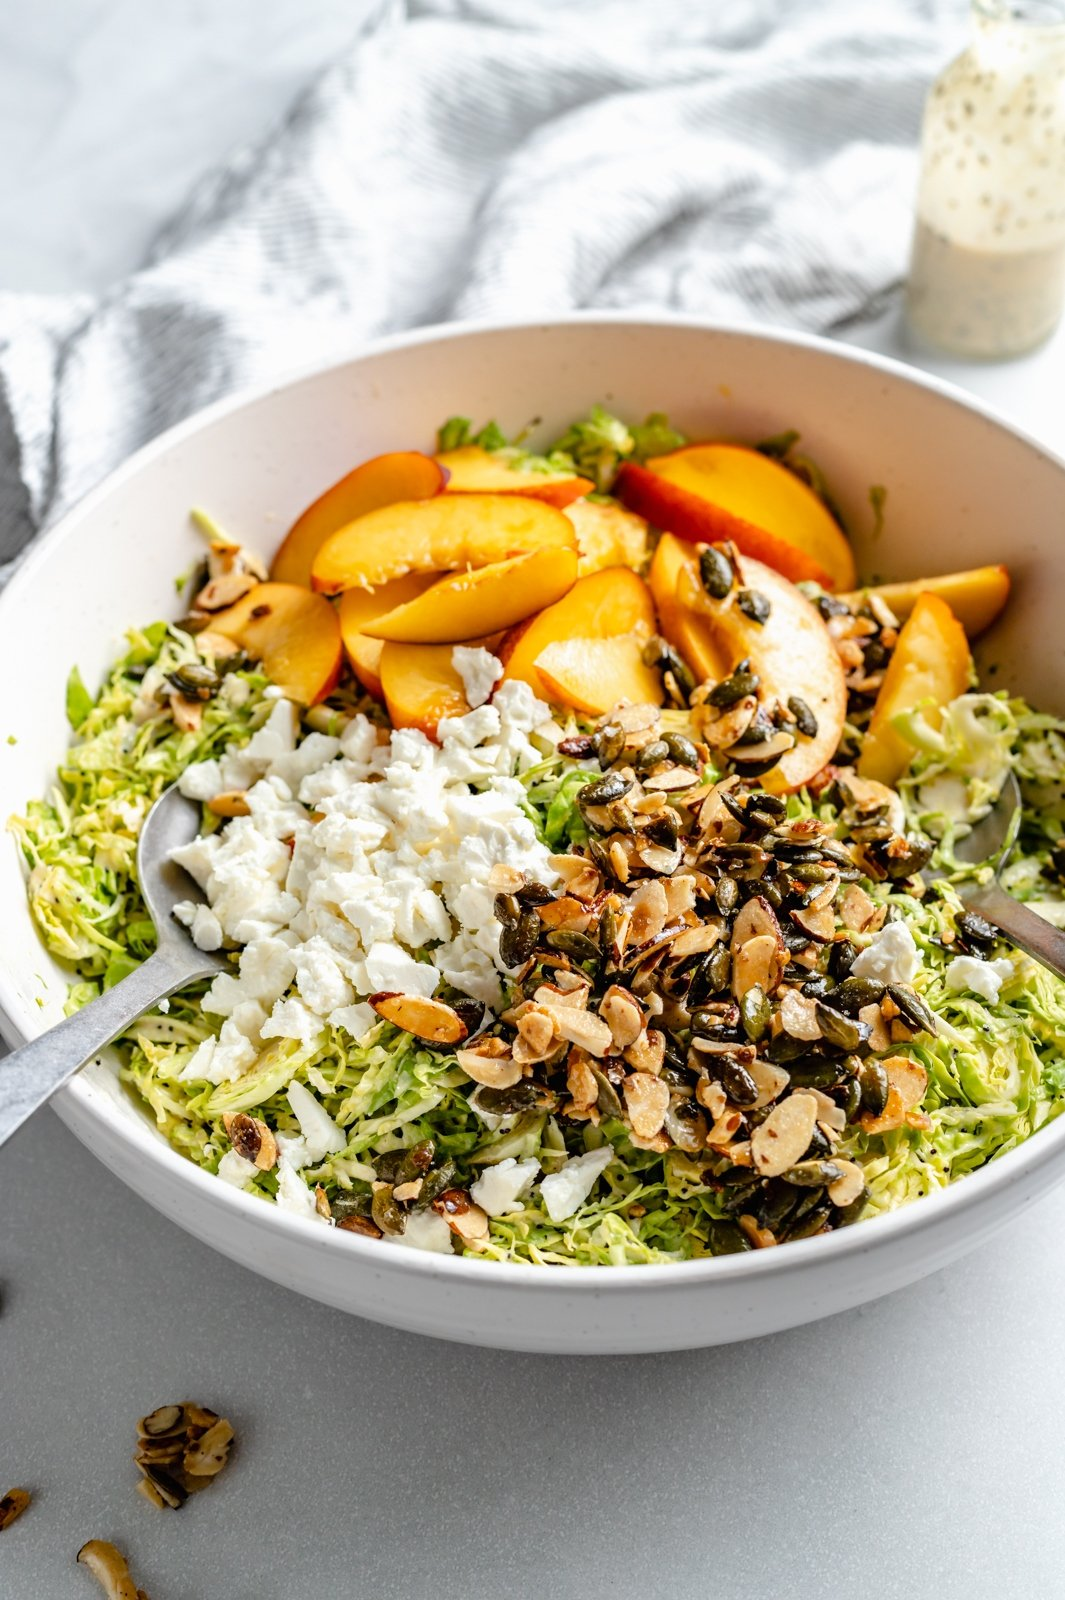 brussels sprouts peach salad with nuts and feta cheese in a bowl